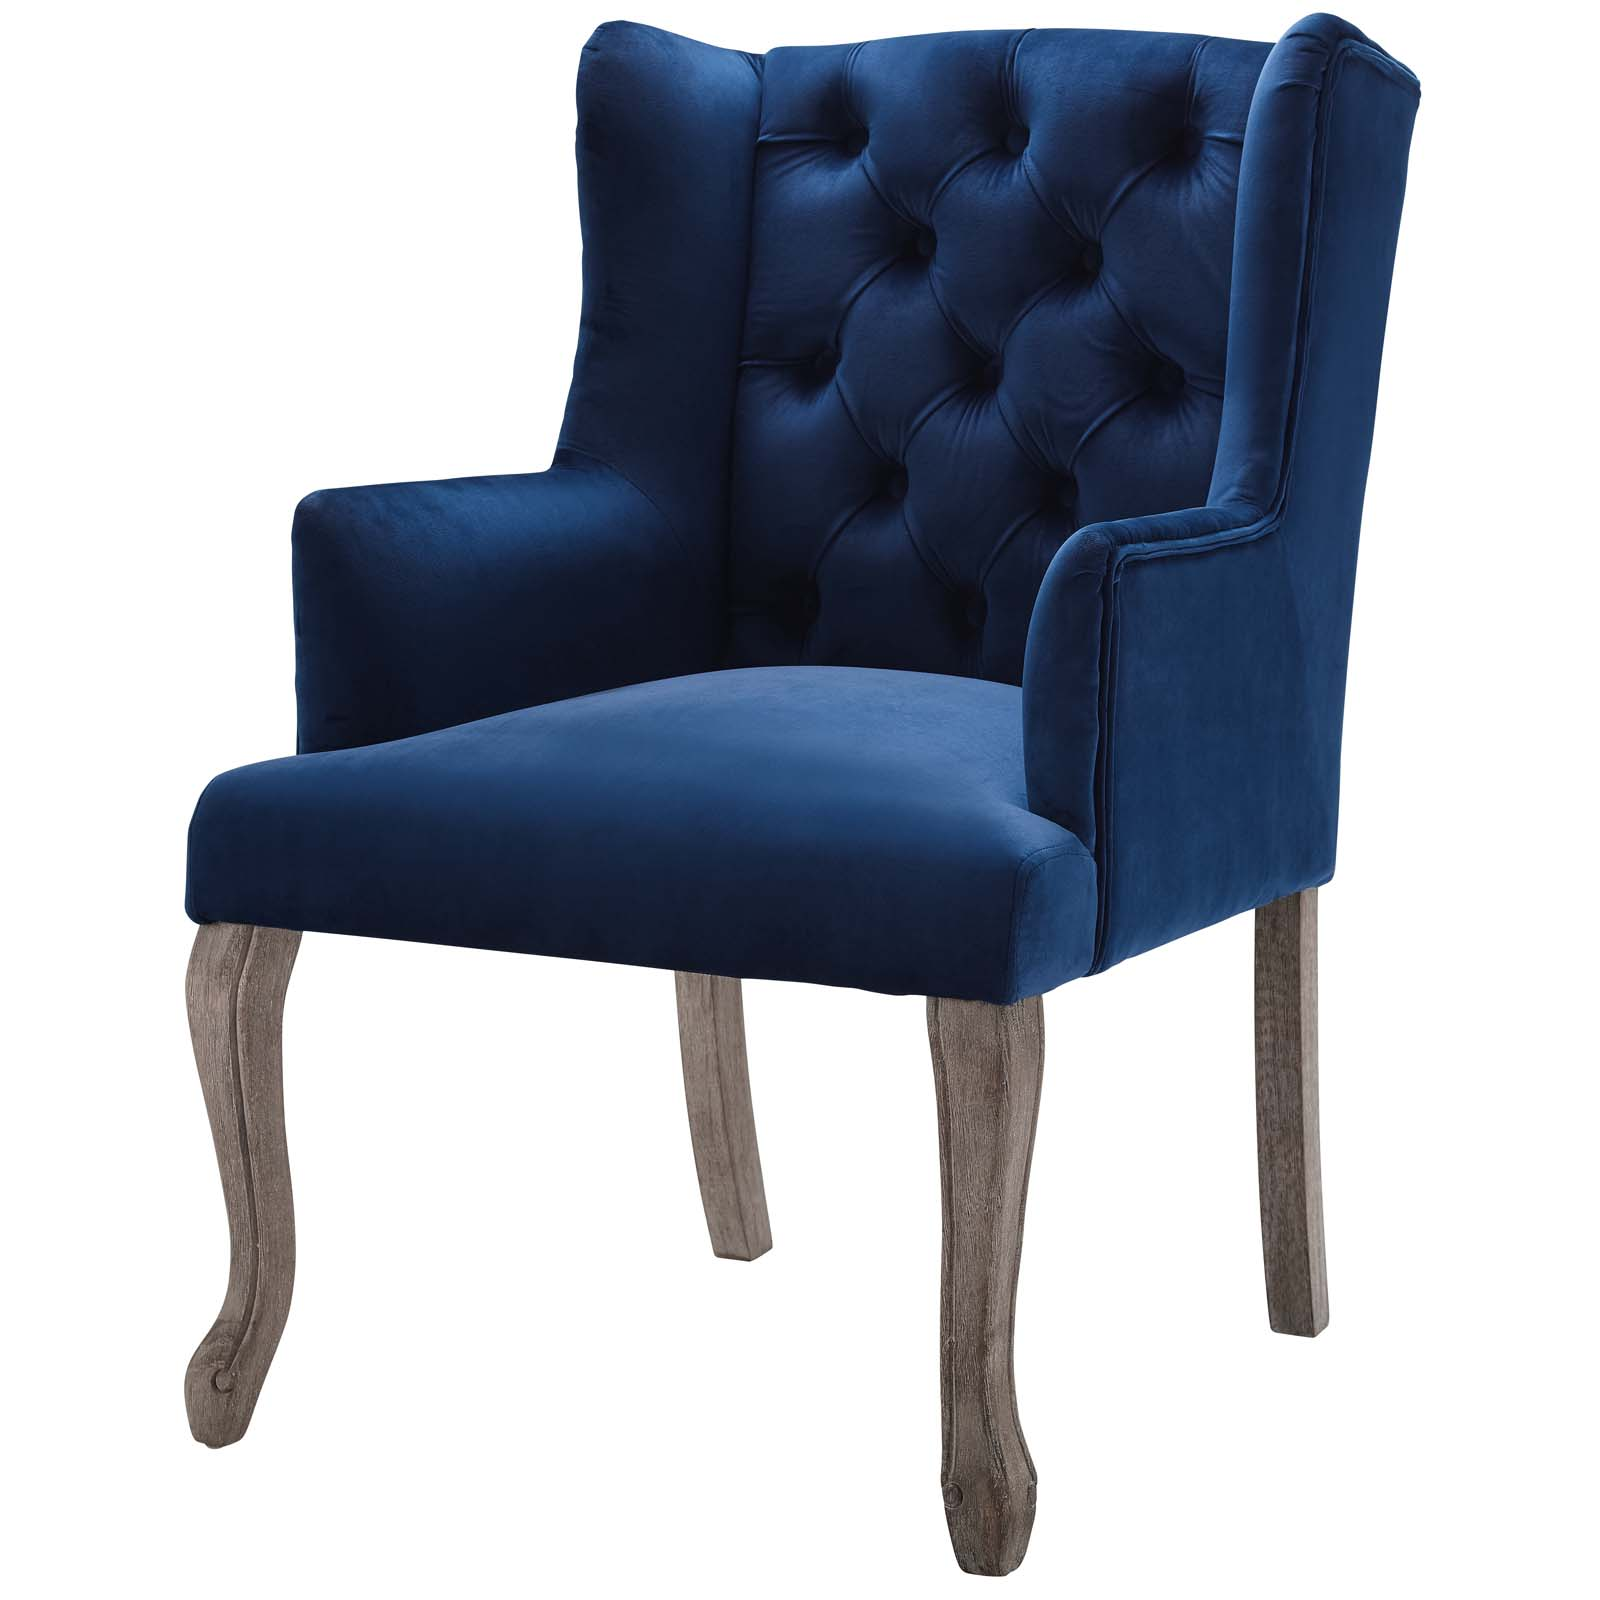 Details About Country Farm Dining Vintage Side Chair Velvet Wood Navy Blue 15577